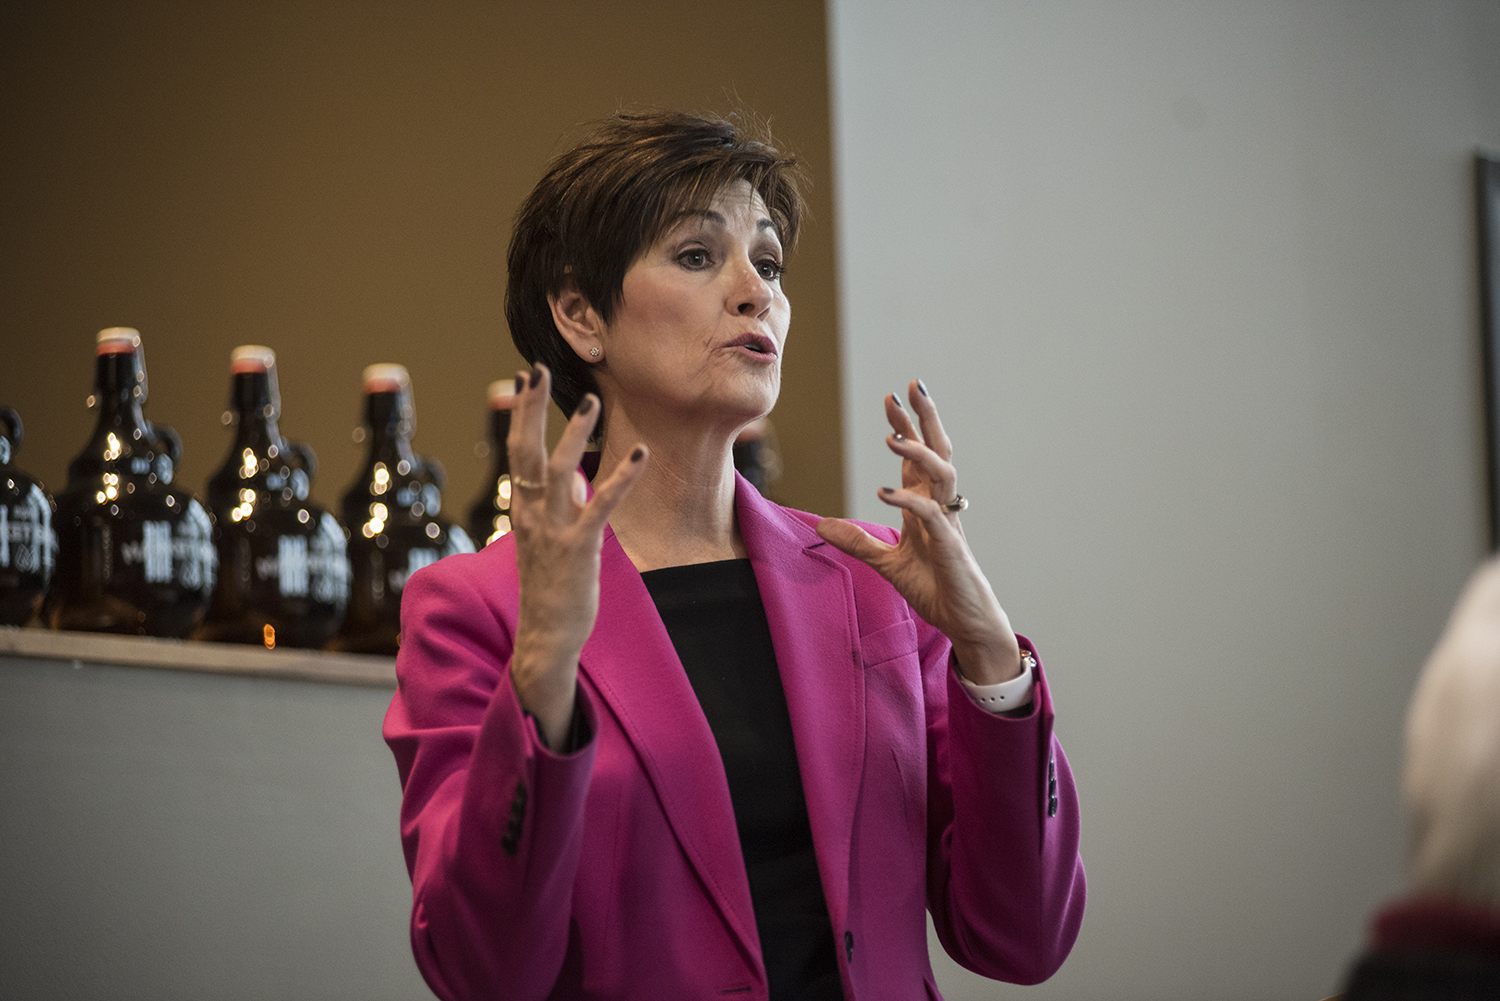 Kim Reynolds talks at Hy-Vee in Coralville during her 99 Counties tour on Thursday, April 5, 2018.